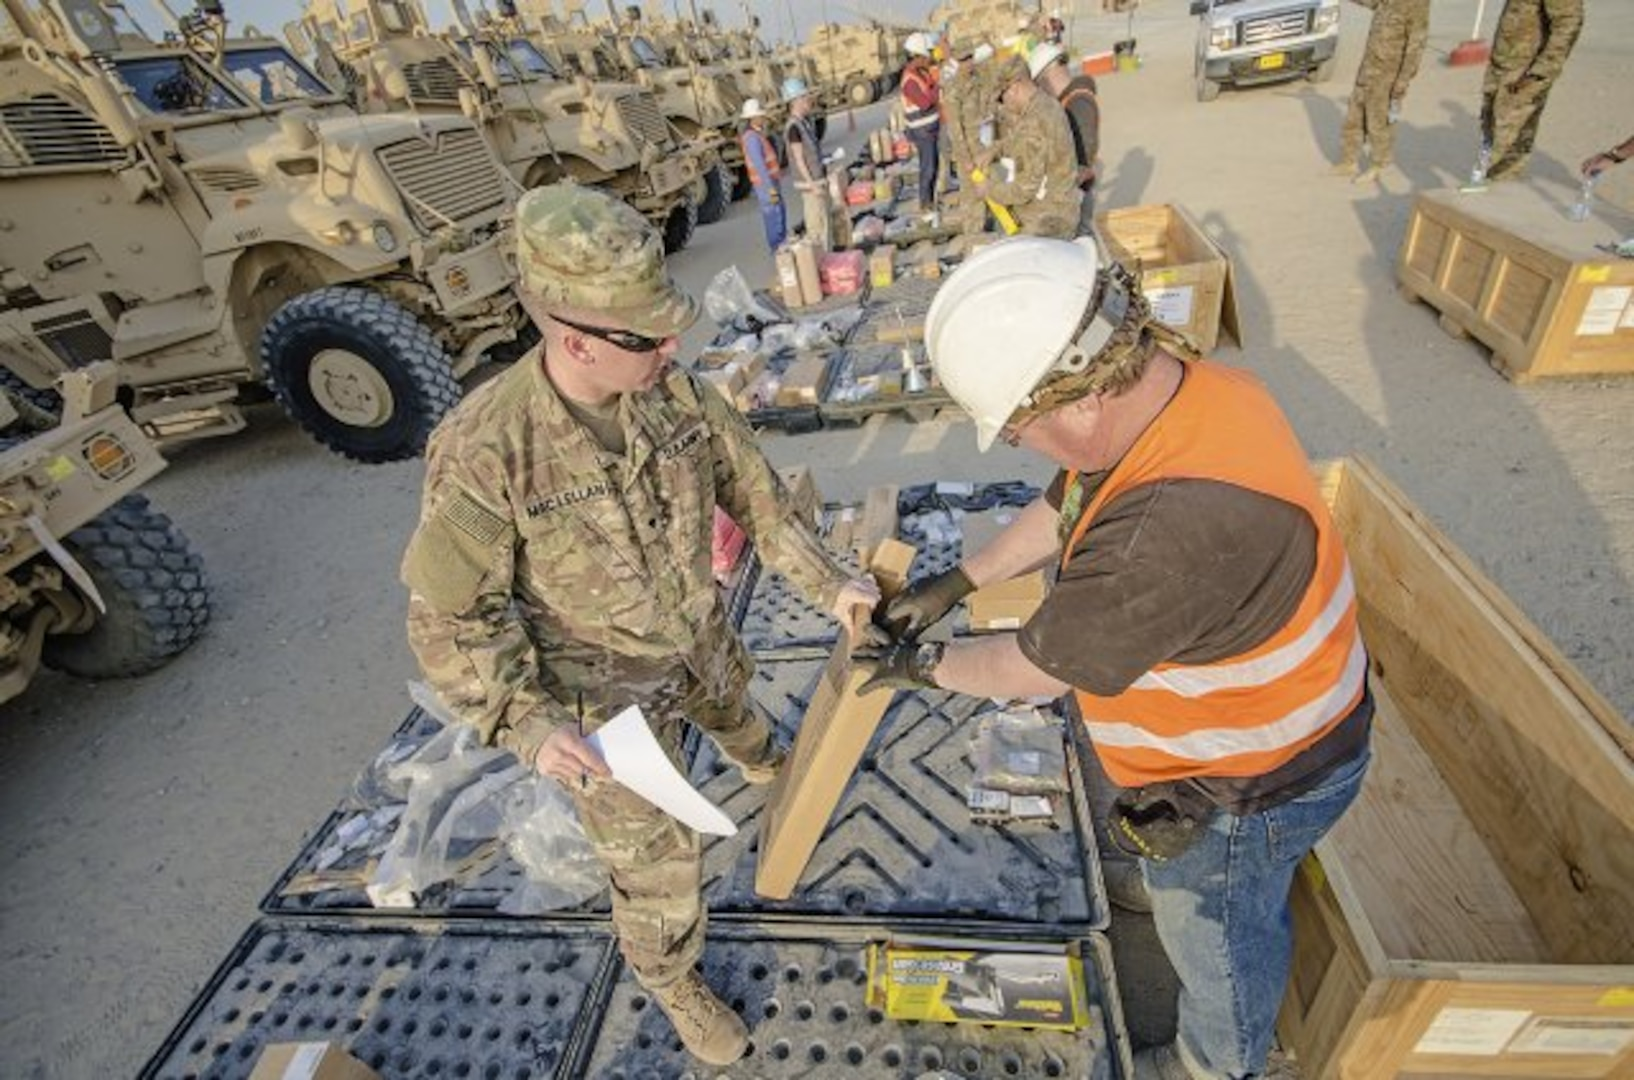 Soldiers with the 2nd Brigade Combat Team, 82nd Airborne Division verify inventory during an equipment layout led by the 401st Army Field Support Brigade at Camp Arifjan, Kuwait, Feb. 6. (U.S. Army photo by Justin Graff, 401st AFSB Public Affairs)